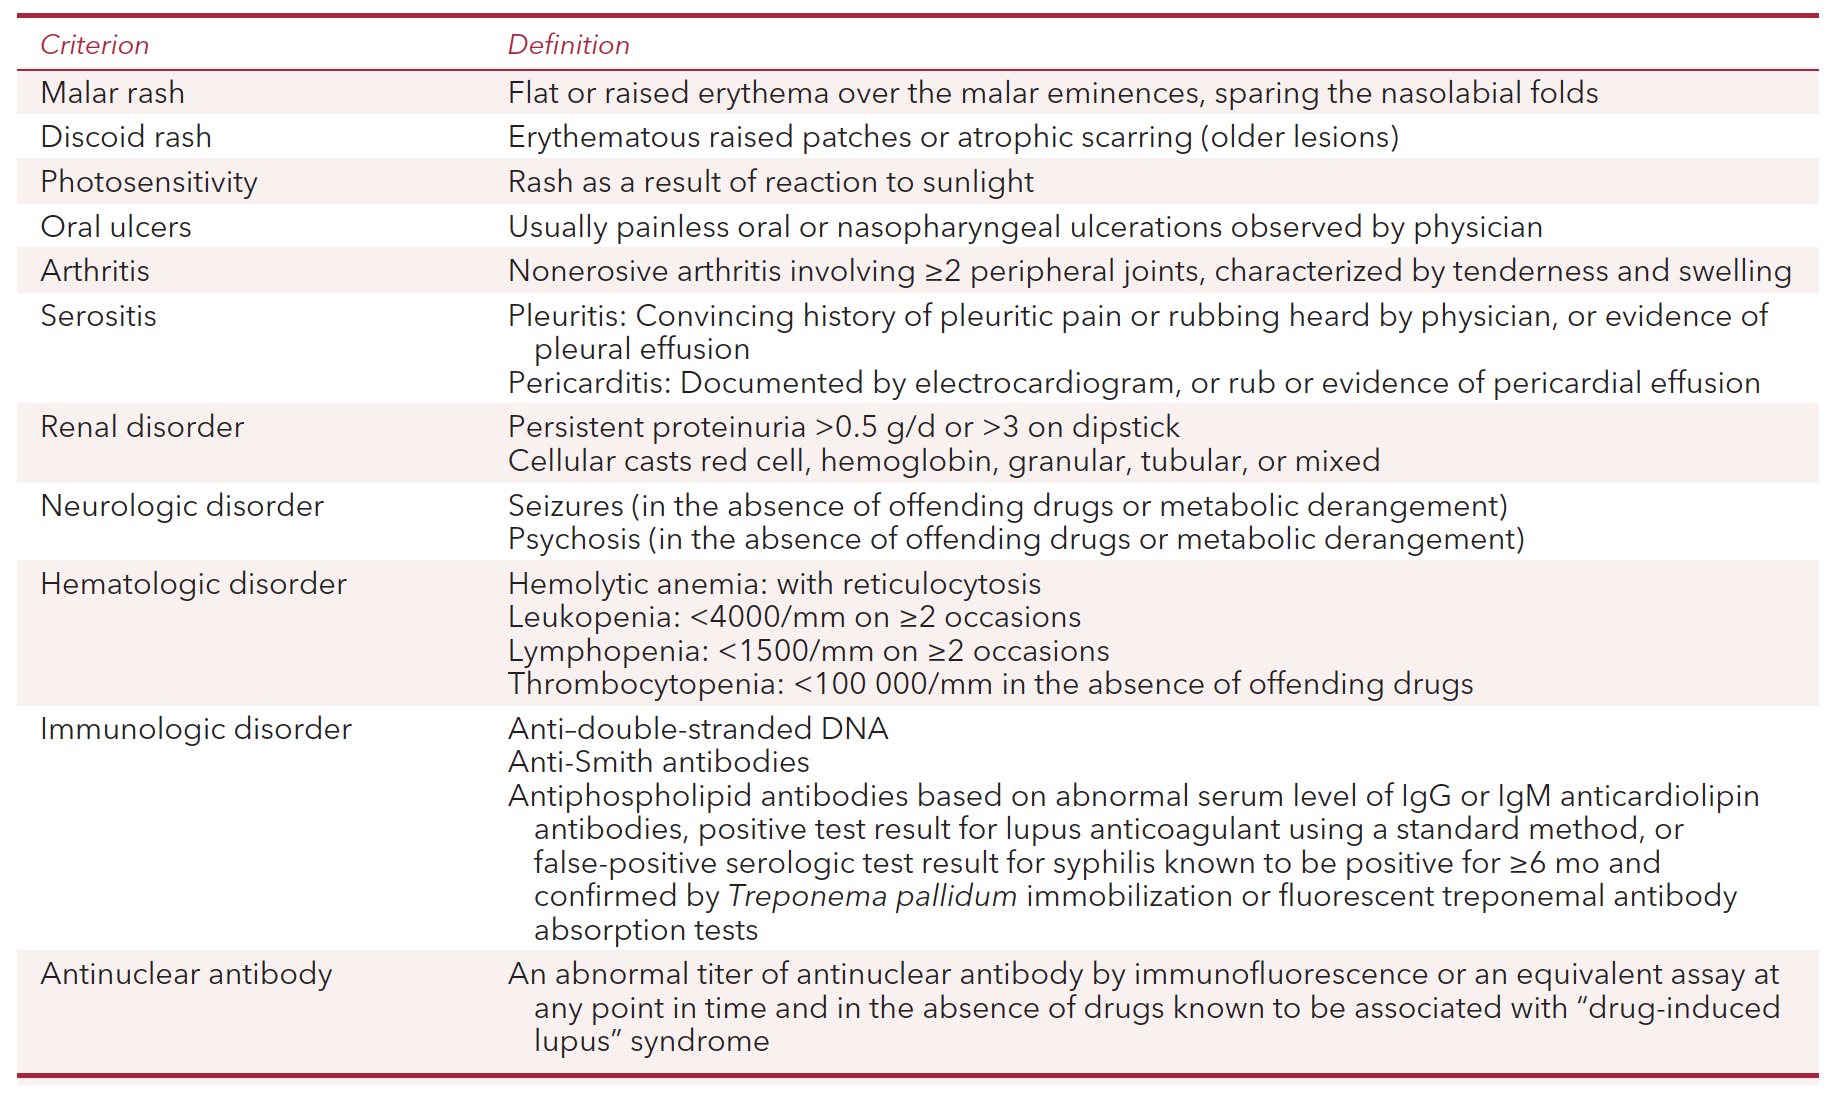 From cited article. Any 4 to make the diagnosis